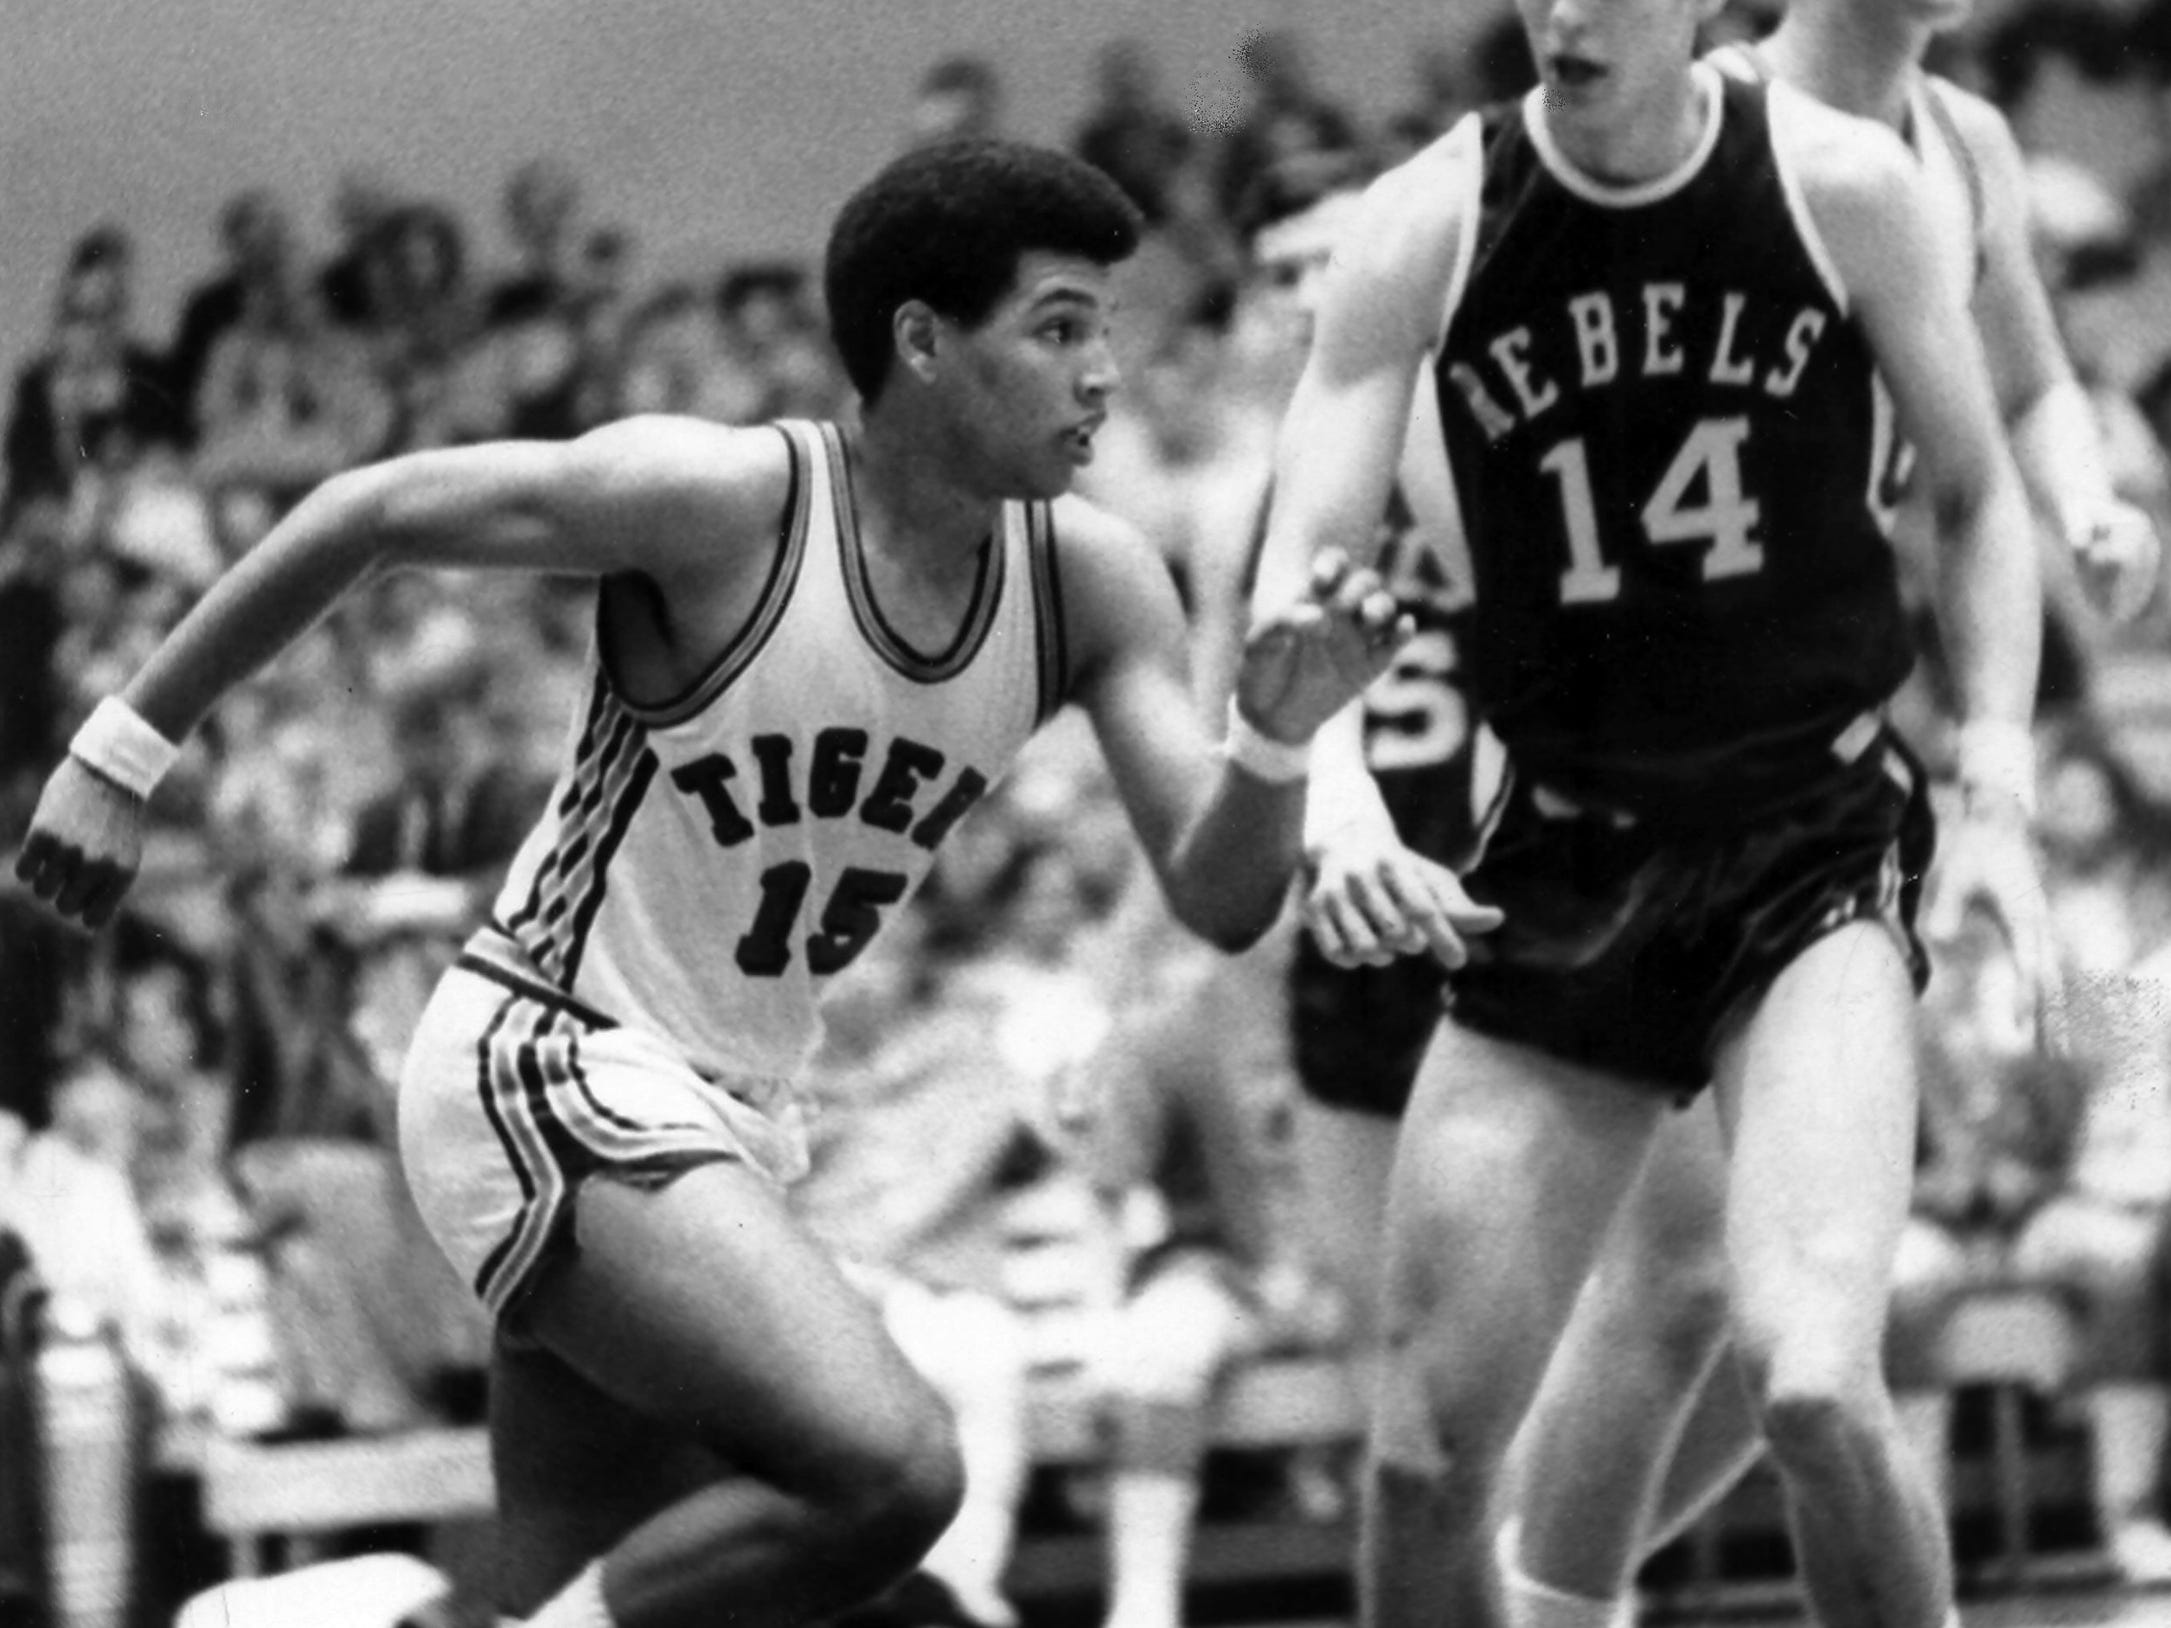 March 4, 1970 - A rivalry begun in high school continued in March 1970 when the freshmen teams from Memphis State and Ole Miss played at the Mid-South Coliseum. Larry Finch (#15) led the Tigers with 32 points and Johnny Neumann (#14) led the Rebels with 44. Neumann's Rebels came out on the long end of the score, winning 103 to 95. Finch played at Melrose while Neumann played at Overton.